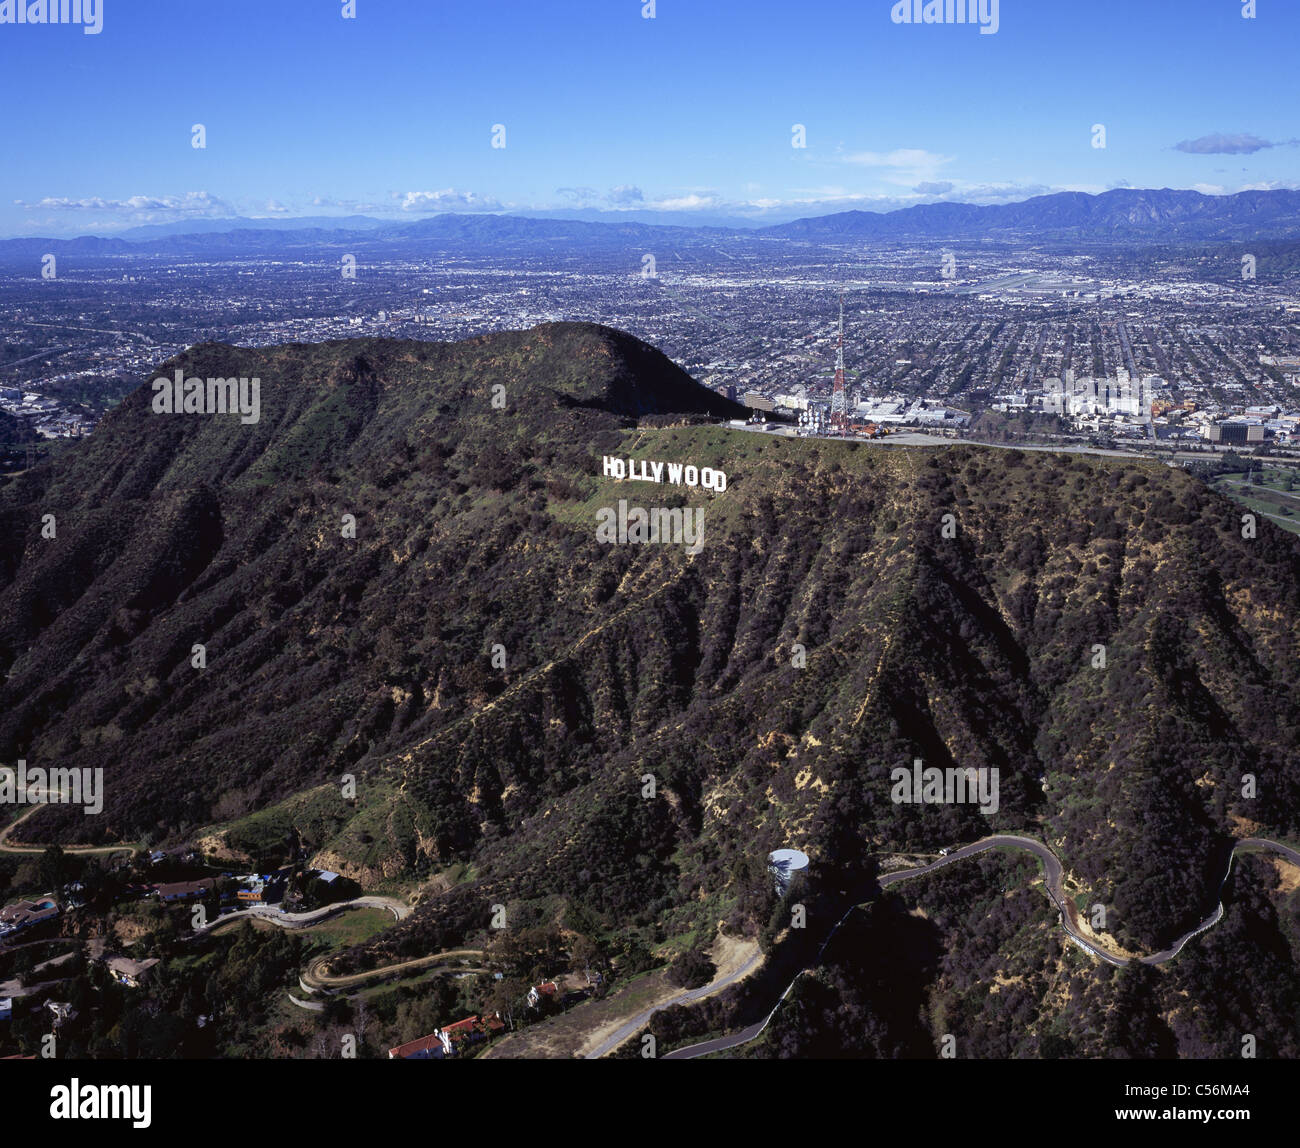 hollywood sign aerial view city of burbank behind the. Black Bedroom Furniture Sets. Home Design Ideas